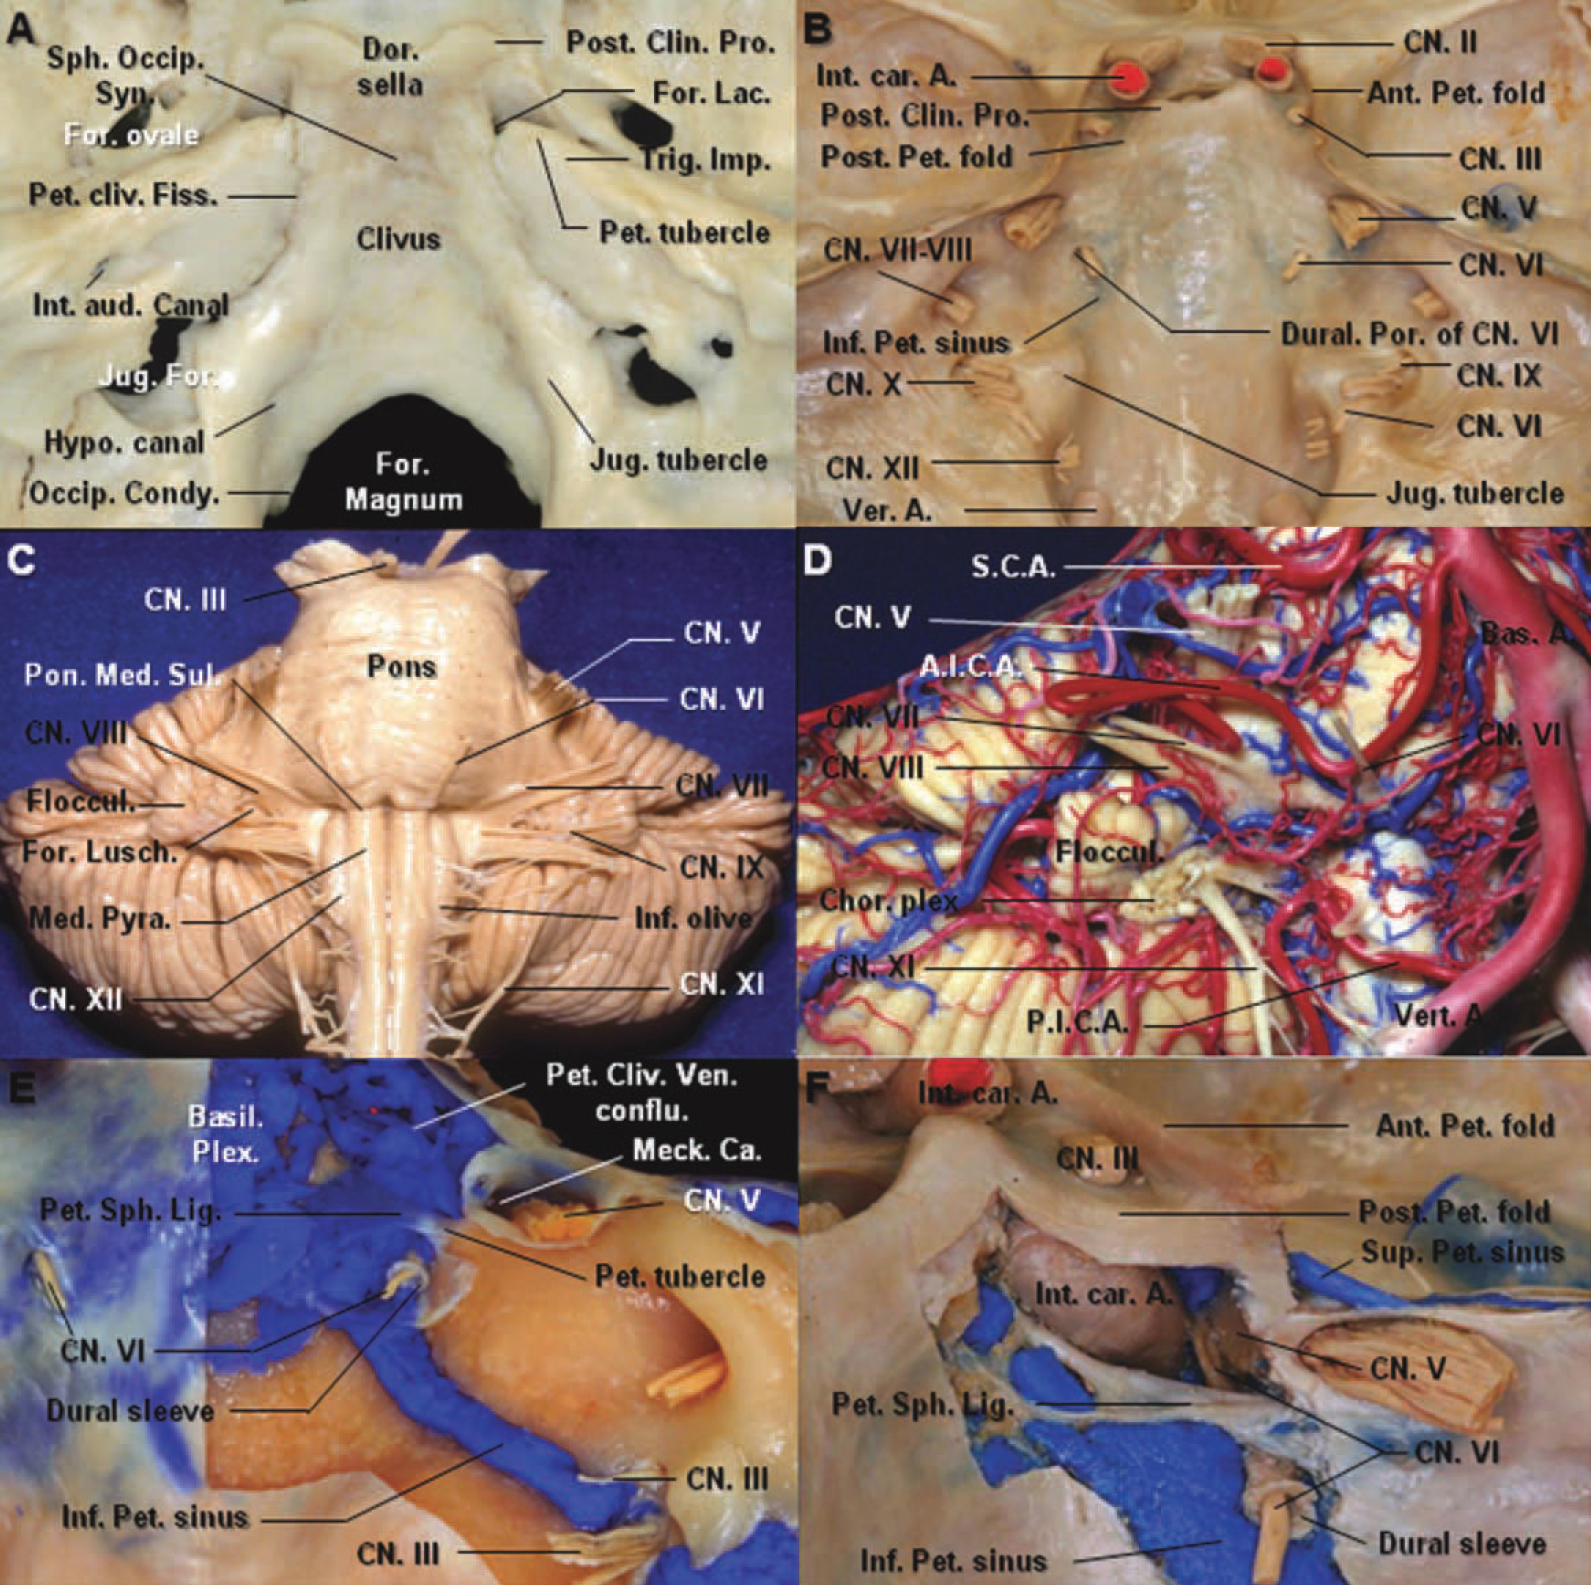 Figure 1. A: The petrosal apex of the temporal bone is received into the angular interval between the clival part of the occipital bone and the greater wing of the sphenoid bone. The apex of the petrous bone presents the internal orifice of the internal carotid artery and forms the posterolateral border of the foramen lacerum. The petrous tubercle, the insertion of the petrosphenoid ligament, is medial to the trigeminal impression. B: The brain has been removed to expose the foramina for the cranial nerves. The abducens nerve enters the dural porus of the abducens and Dorello's canal located medial and inferior to the porus of the trigeminal nerve. The Inferior Petrosal Sinus courses medial to the abducens nerve. C: Anterior view of the brainstem. The abducens nerve leaves the brainstem at the junction of the pons and the medulla, medial to the facial nerve. It course upward, anteriorly and laterally between the pons and clivus within pontine arachnoid. D: The anterior inferior cerebellar artery passes dorsal to the abducens nerve. The vein of the pontomesencephalic sulcus courses below the abducens nerve. E: The meningeal dural layer of the posterior aspect of the petrous apex has been removed to expose the dural sleeve of the abducens nerve, petroclival venous confluence, basilar plexus, and inferior petrosal sinus. The inferior petrosal sinus connects the petroclival venous confluence with the jugular bulb and courses medial to the abducens nerve. The abducens nerve passes under the petrosphenoid ligament. F: The petroclival venous confluence has been removed. The abducens nerve enters the cavernous sinus between the internal carotid artery and the trigeminal nerve. The cisternal space follows the nerve inside the dural sleeve. The petrosphenoid ligament is attached laterally to the petrous tubercle medial to the trigeminal nerve. A., artery; Ant., anterior; Aud., auditory; Bas., basilar; Ca., cave; Chor., choroid; Clin., clinoid; CN., cranial nerve; conflu., con